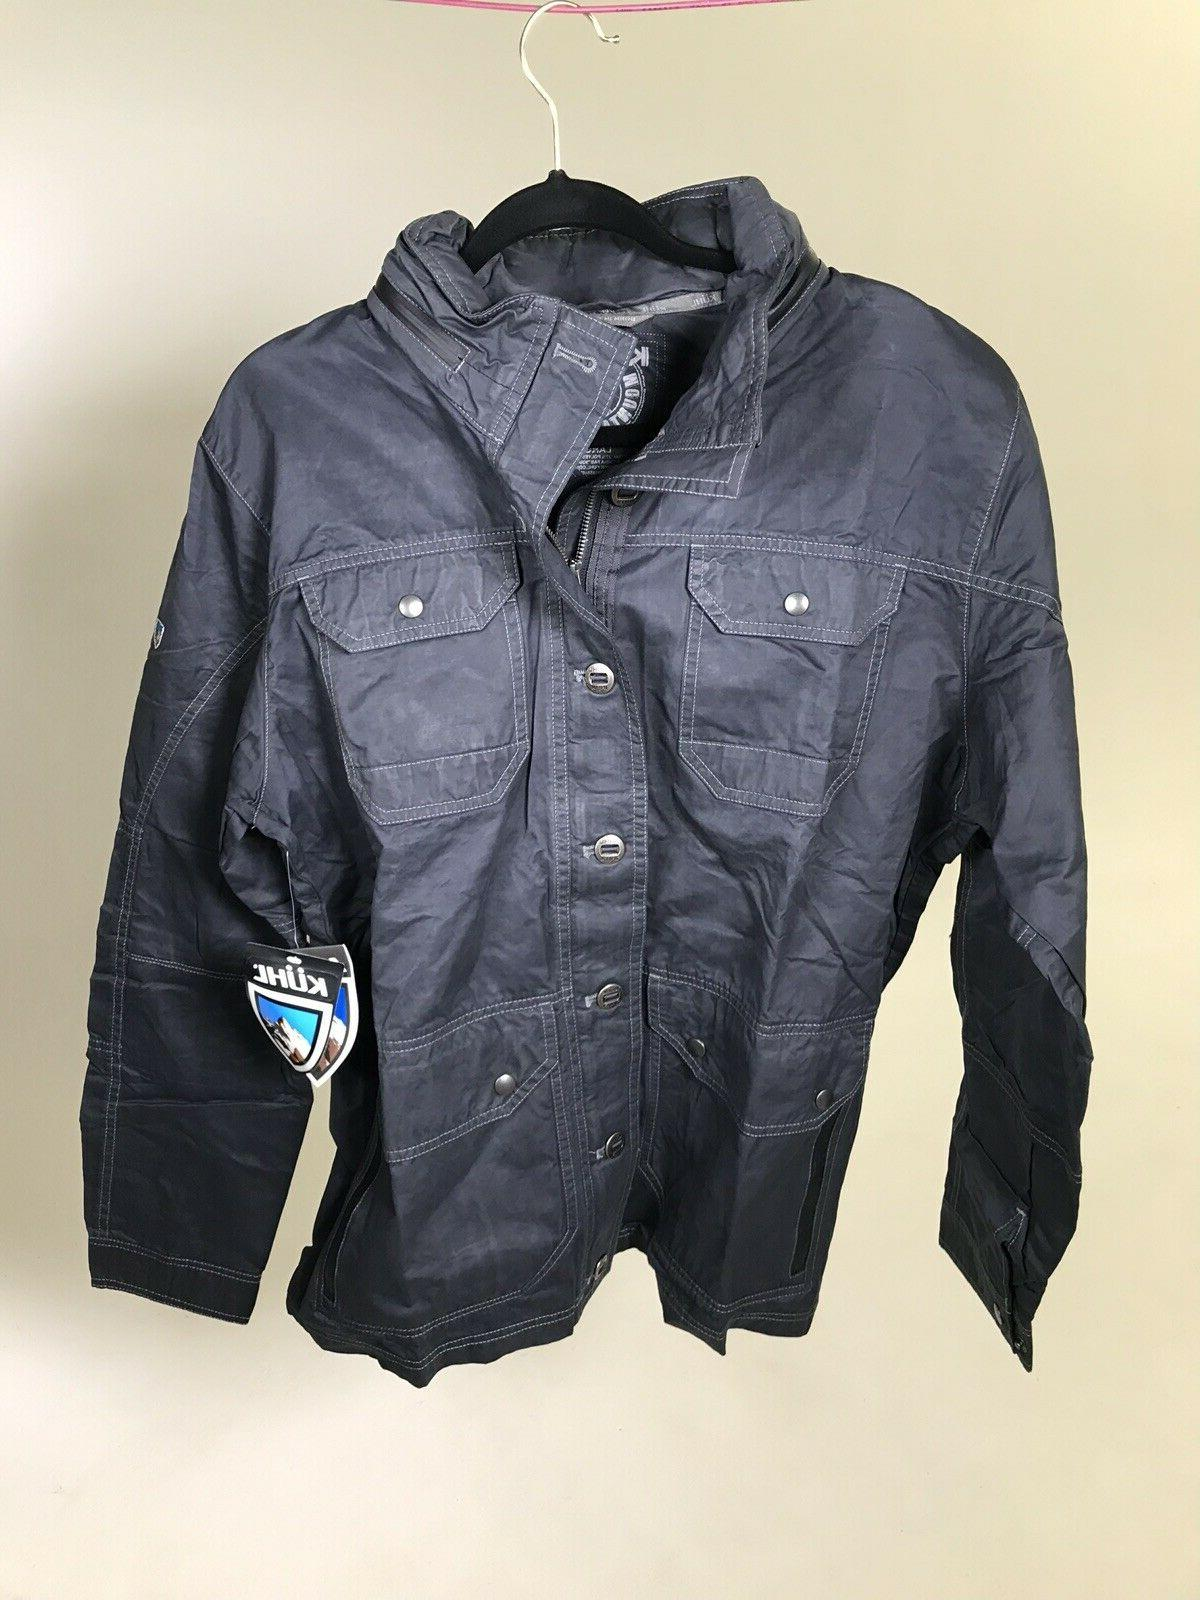 kollusion jacket unlined men s sizes available